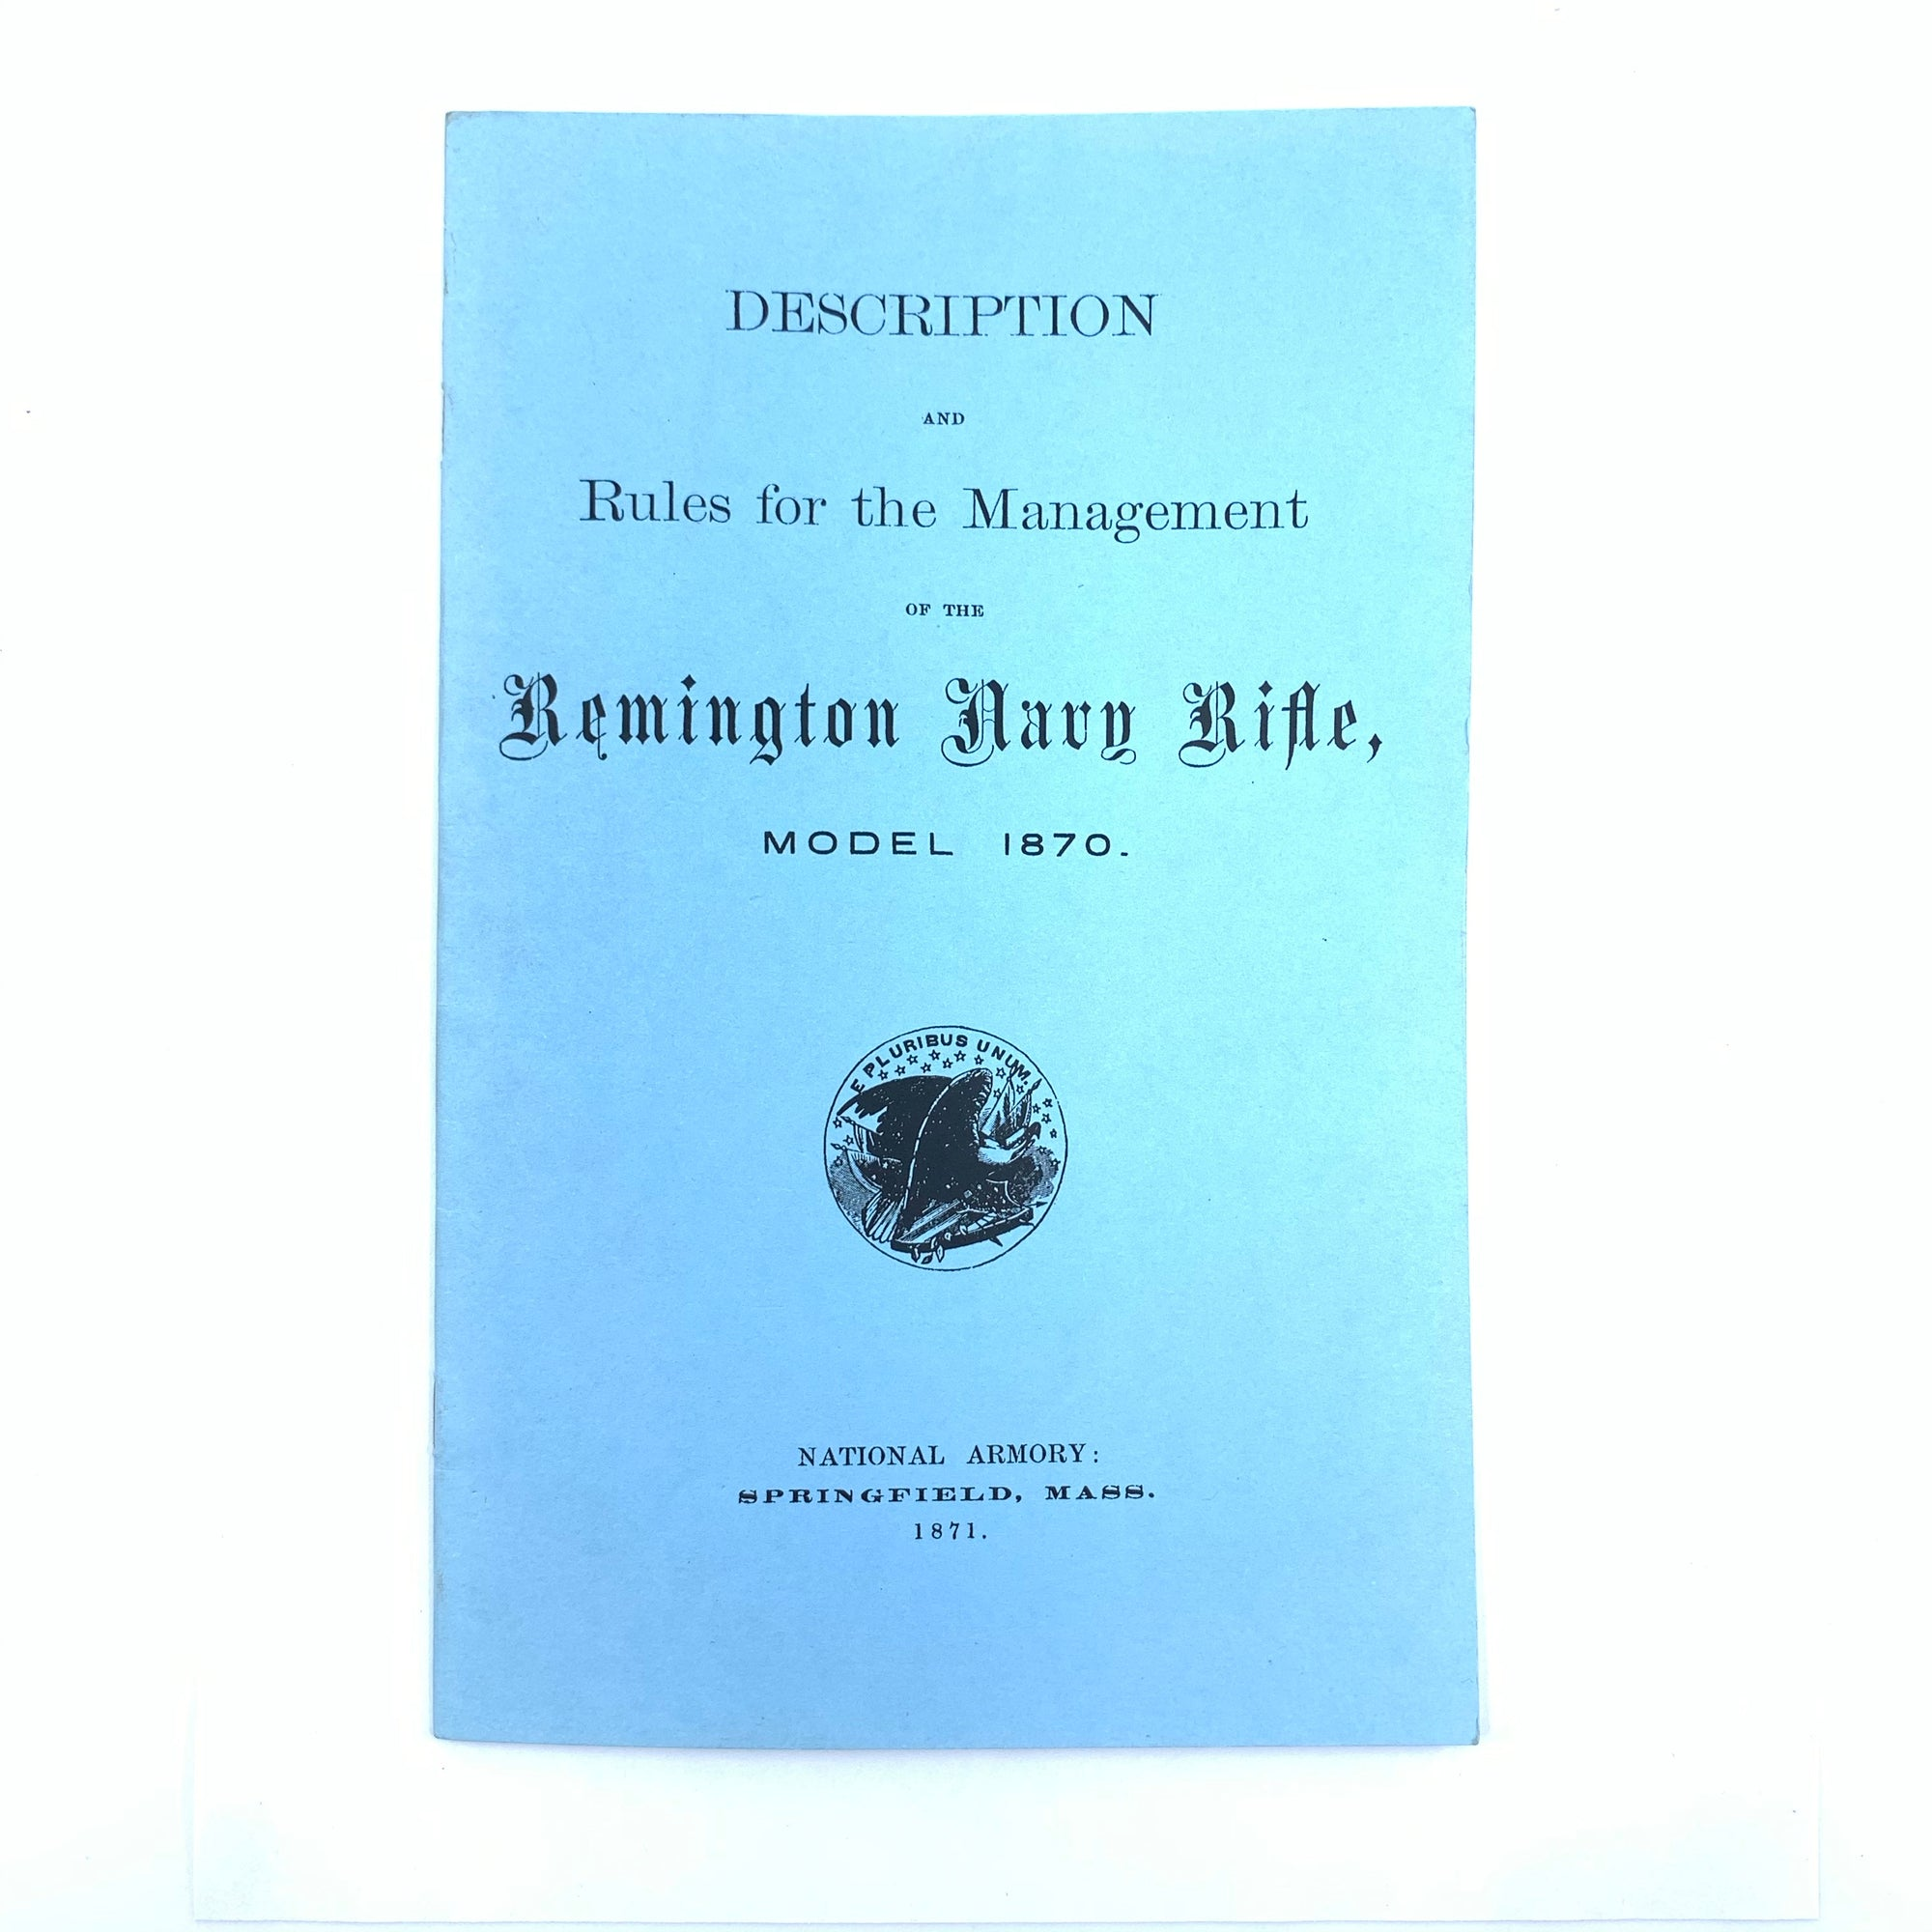 Description and Rules of the Remington Navy Rifle Model 1870 13 pgs Reprint